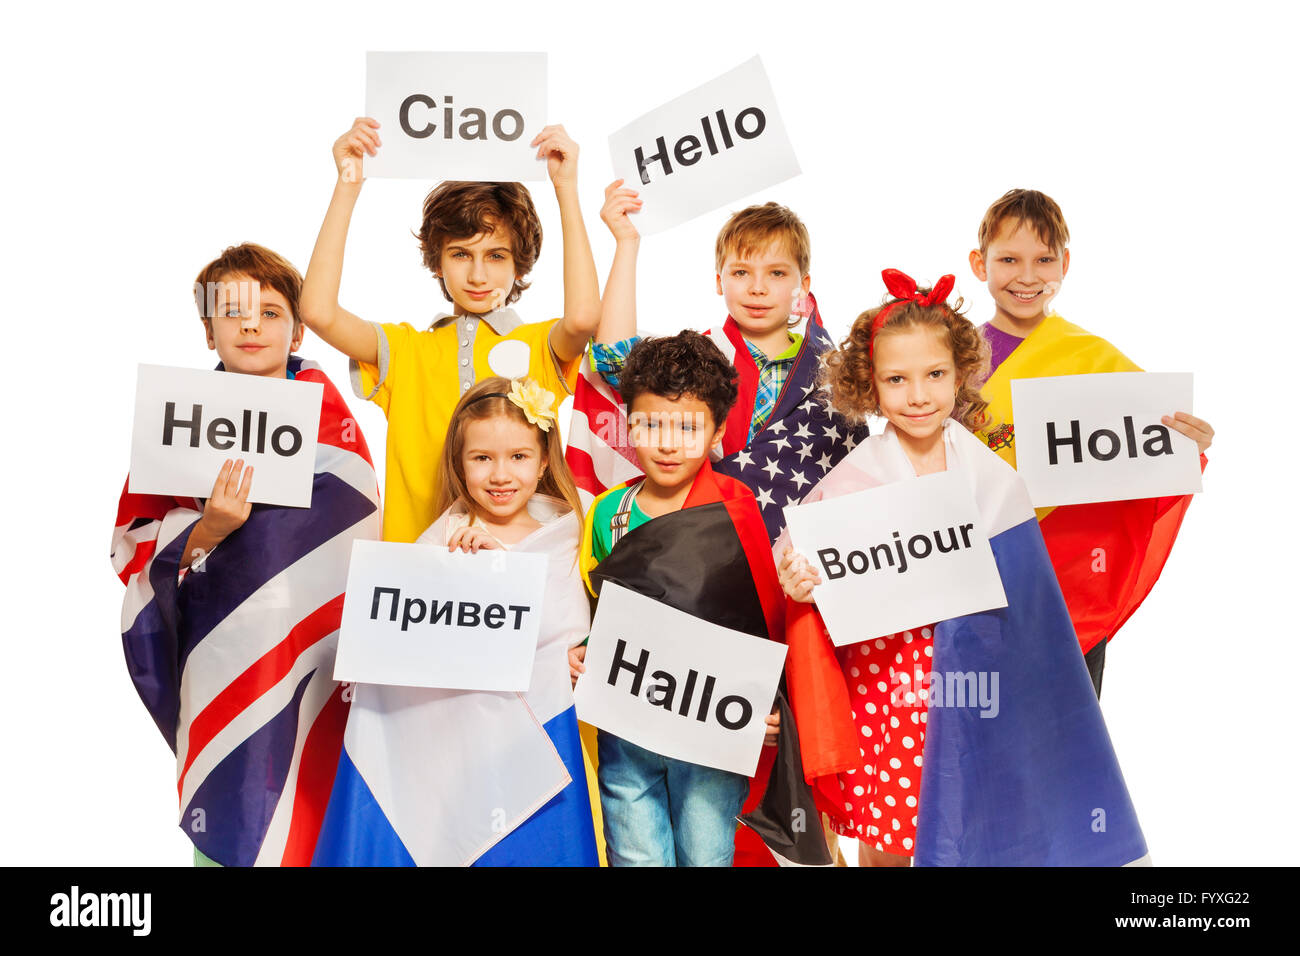 Kids holding greeting signs in different languages stock photo kids holding greeting signs in different languages m4hsunfo